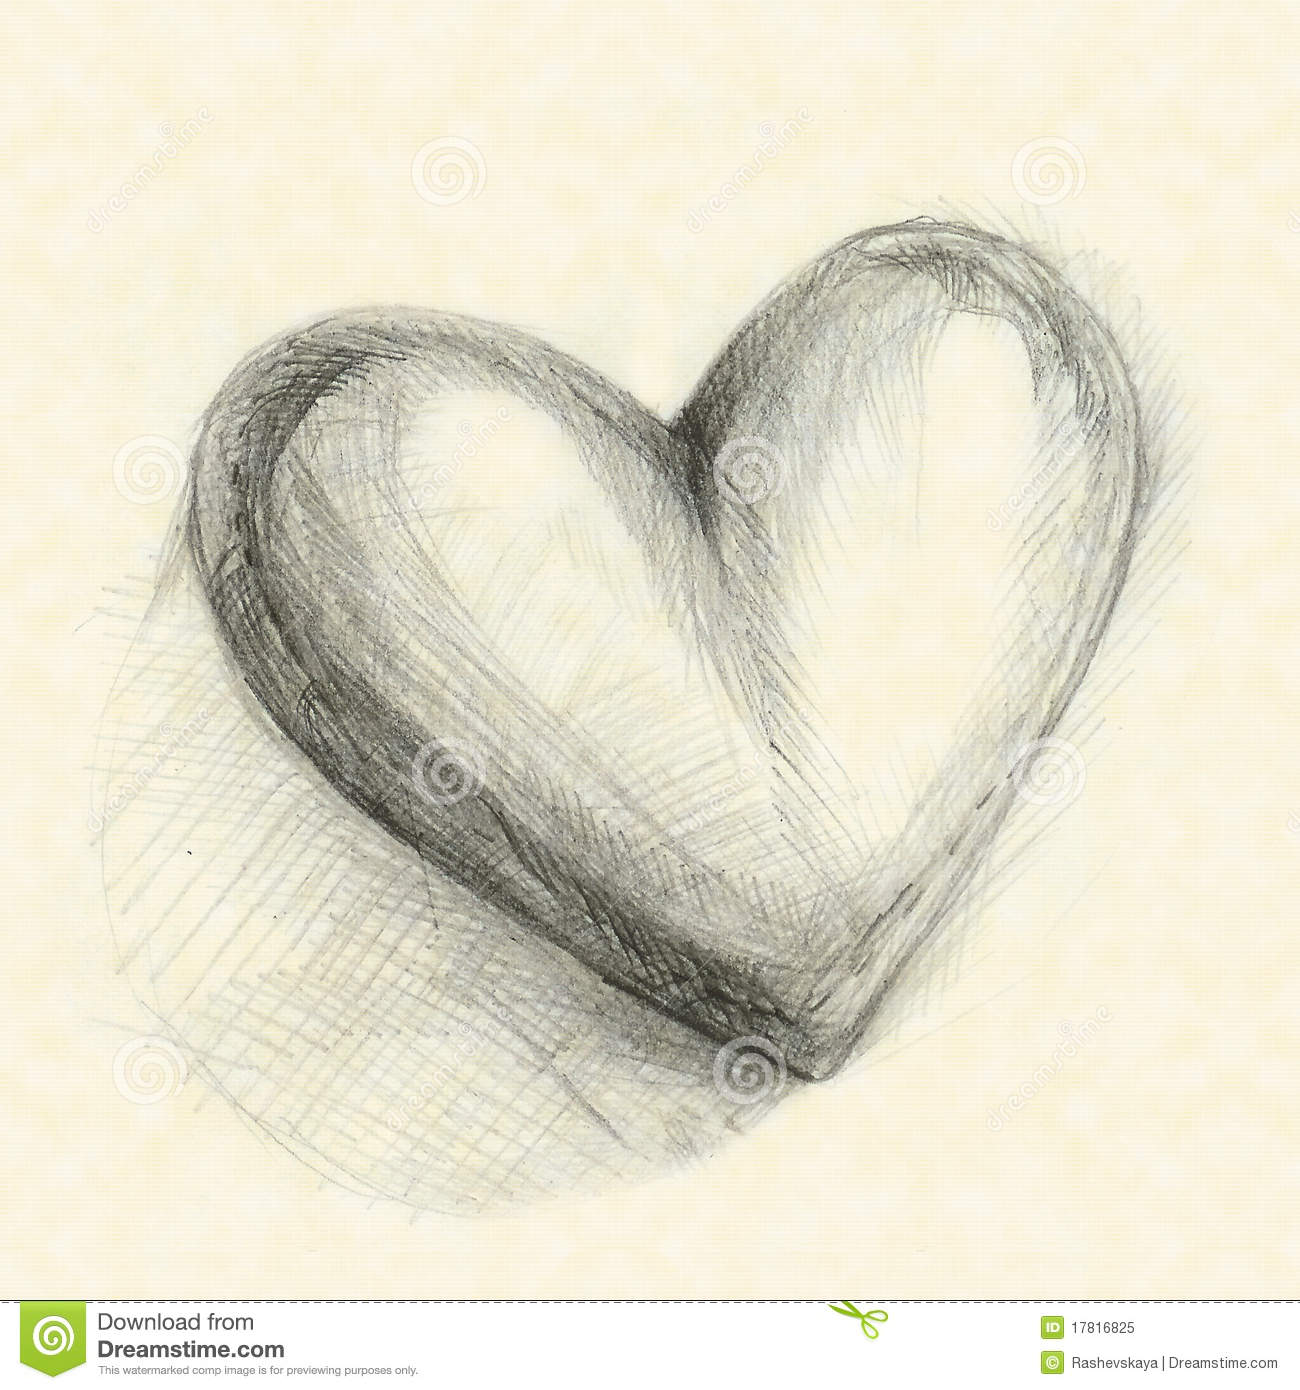 Drawn In Pencil Heart Royalty Free Stock Photo - Image: 17816825